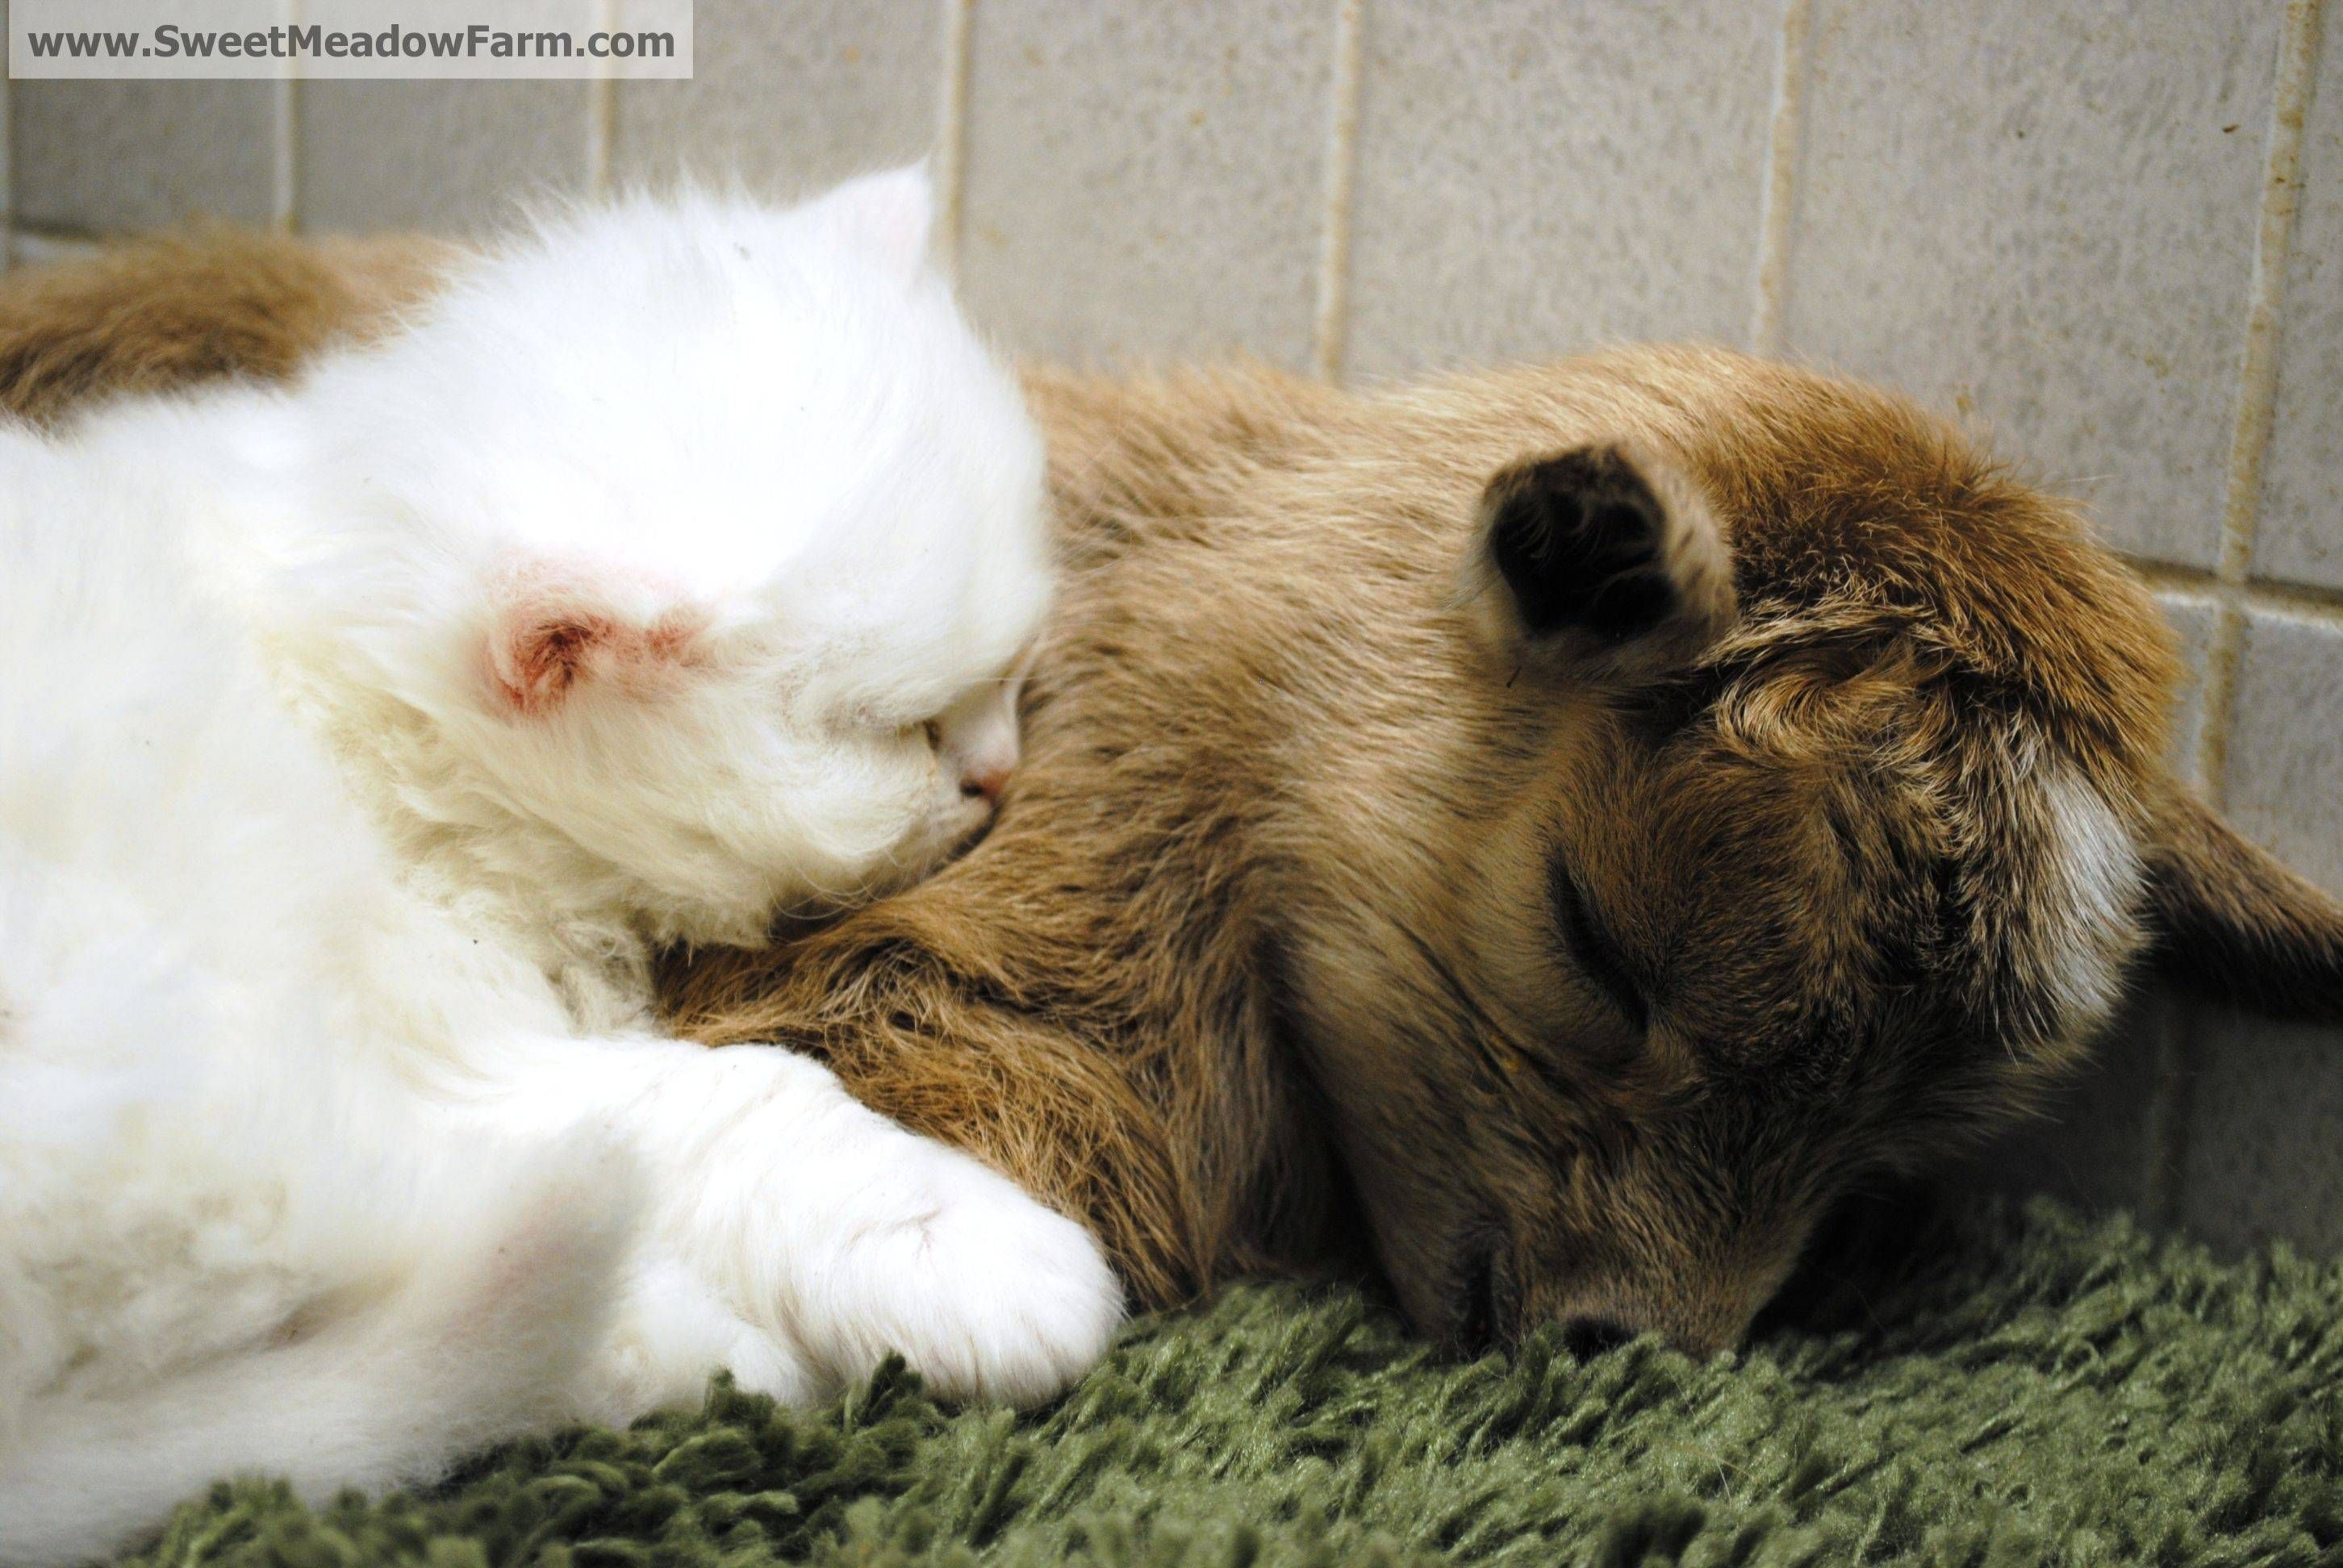 I Think I Have Reached The Pinnacle Of Cuteness Baby Goat And Kitten Snuggling Baby Goats Baby Animals Love Pet